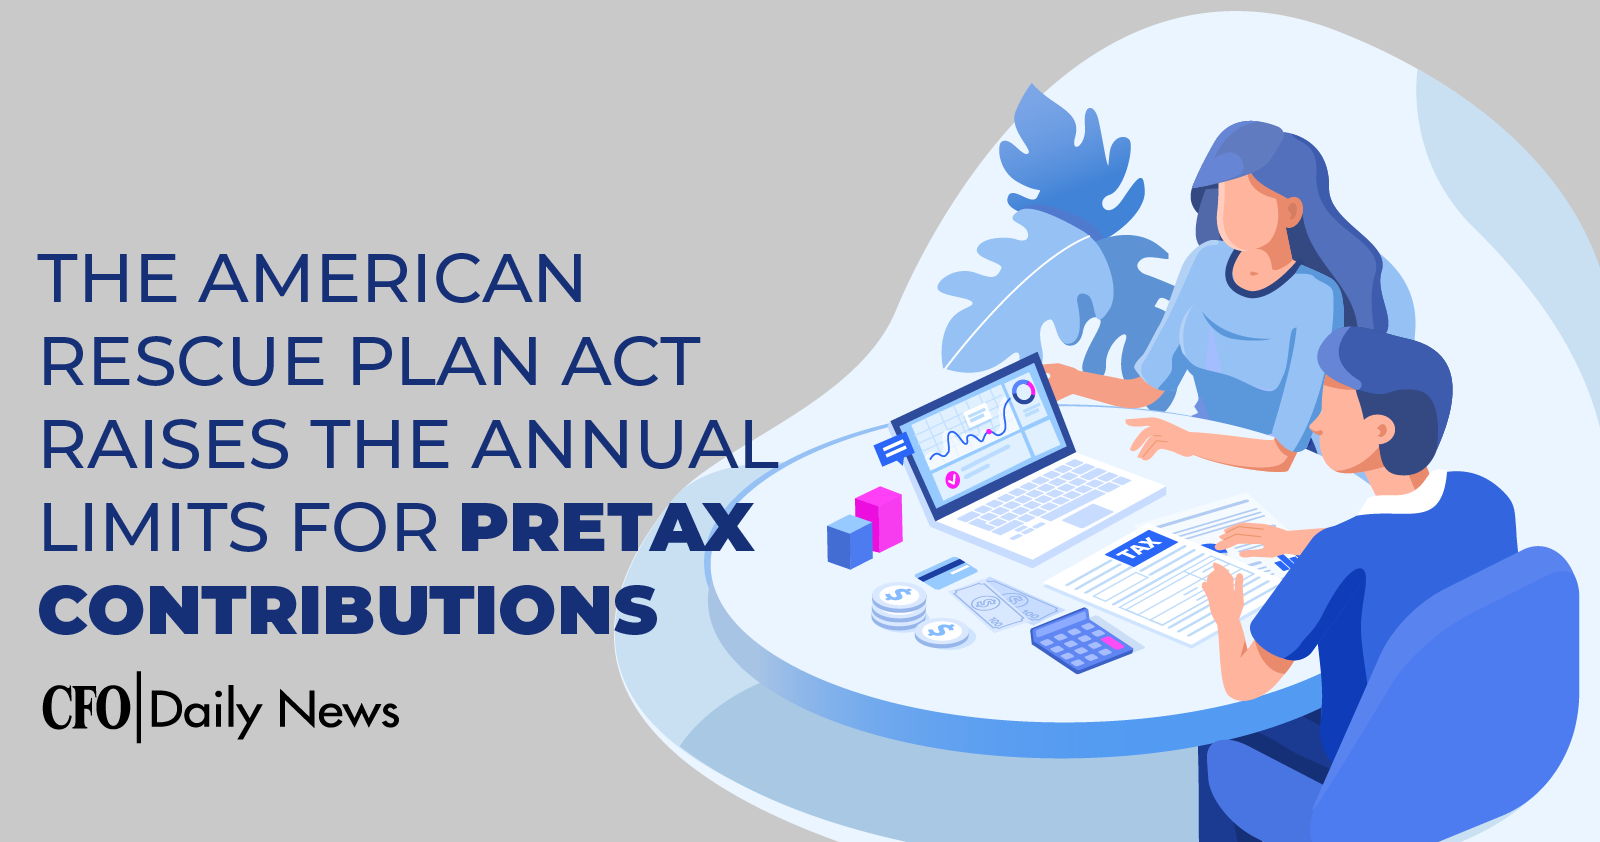 the american rescue plan act raises the annual limits for pretax contributions